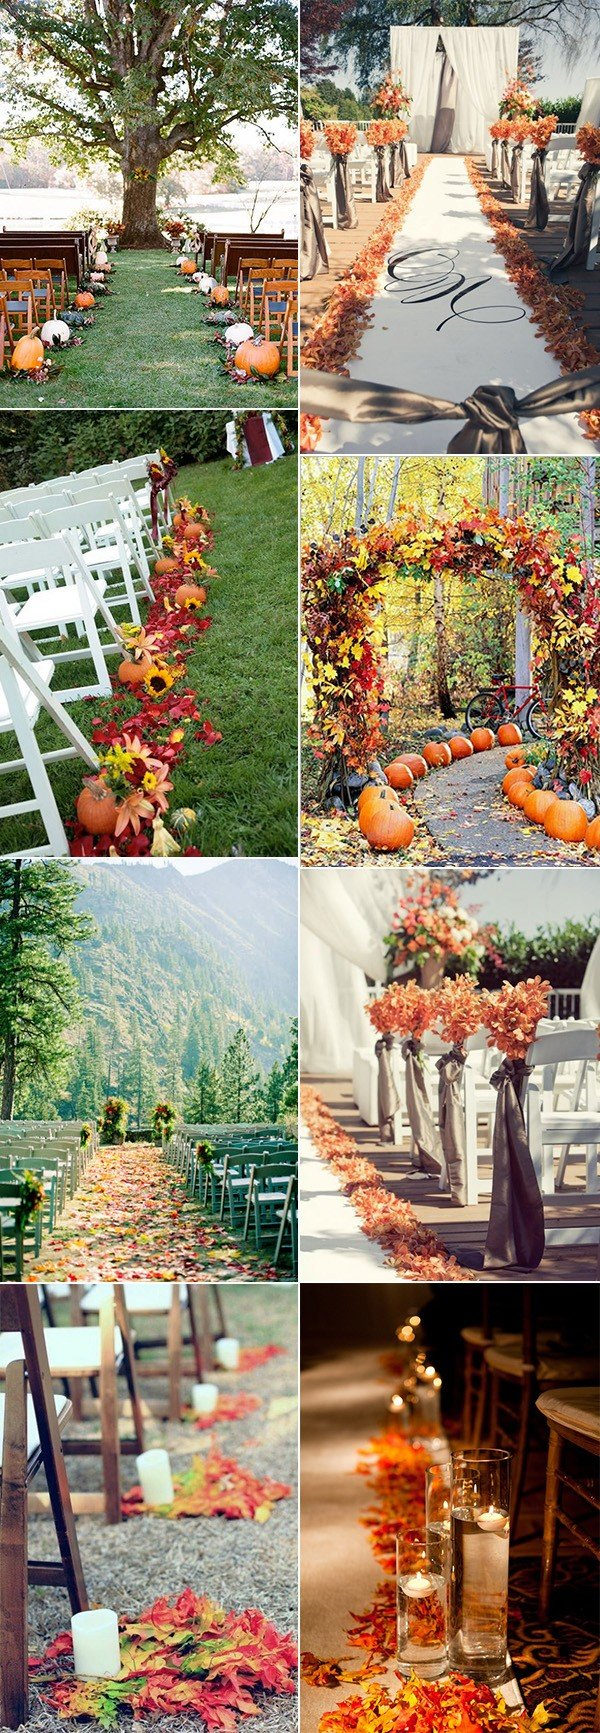 70 amazing fall wedding ideas for 2018 oh best day ever. Black Bedroom Furniture Sets. Home Design Ideas